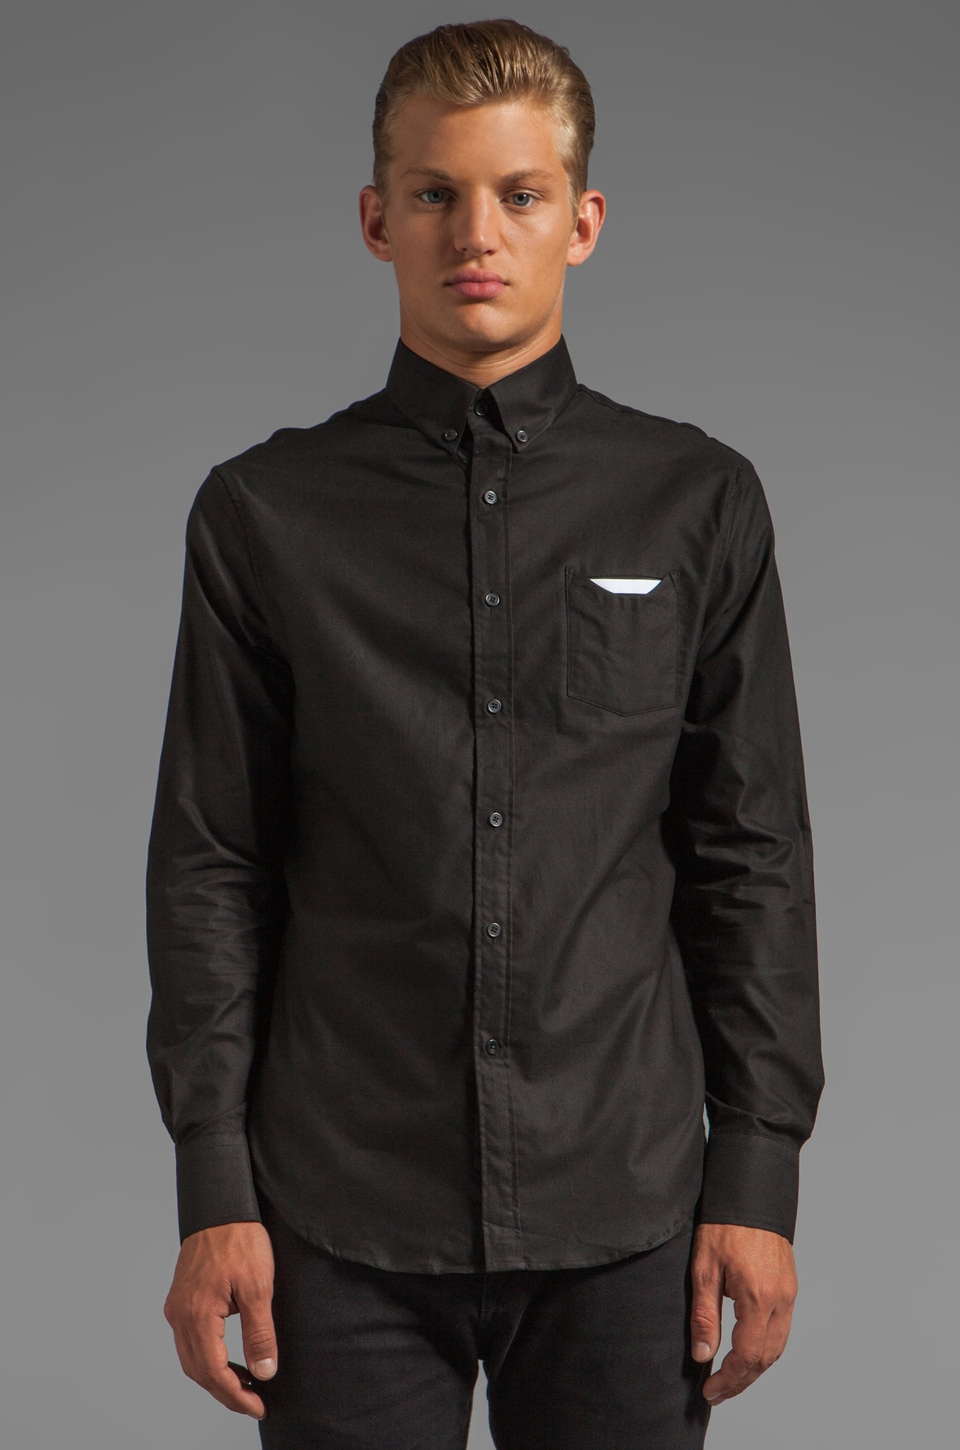 Munsoo Kwon Contrast Pocket Shirt in Black